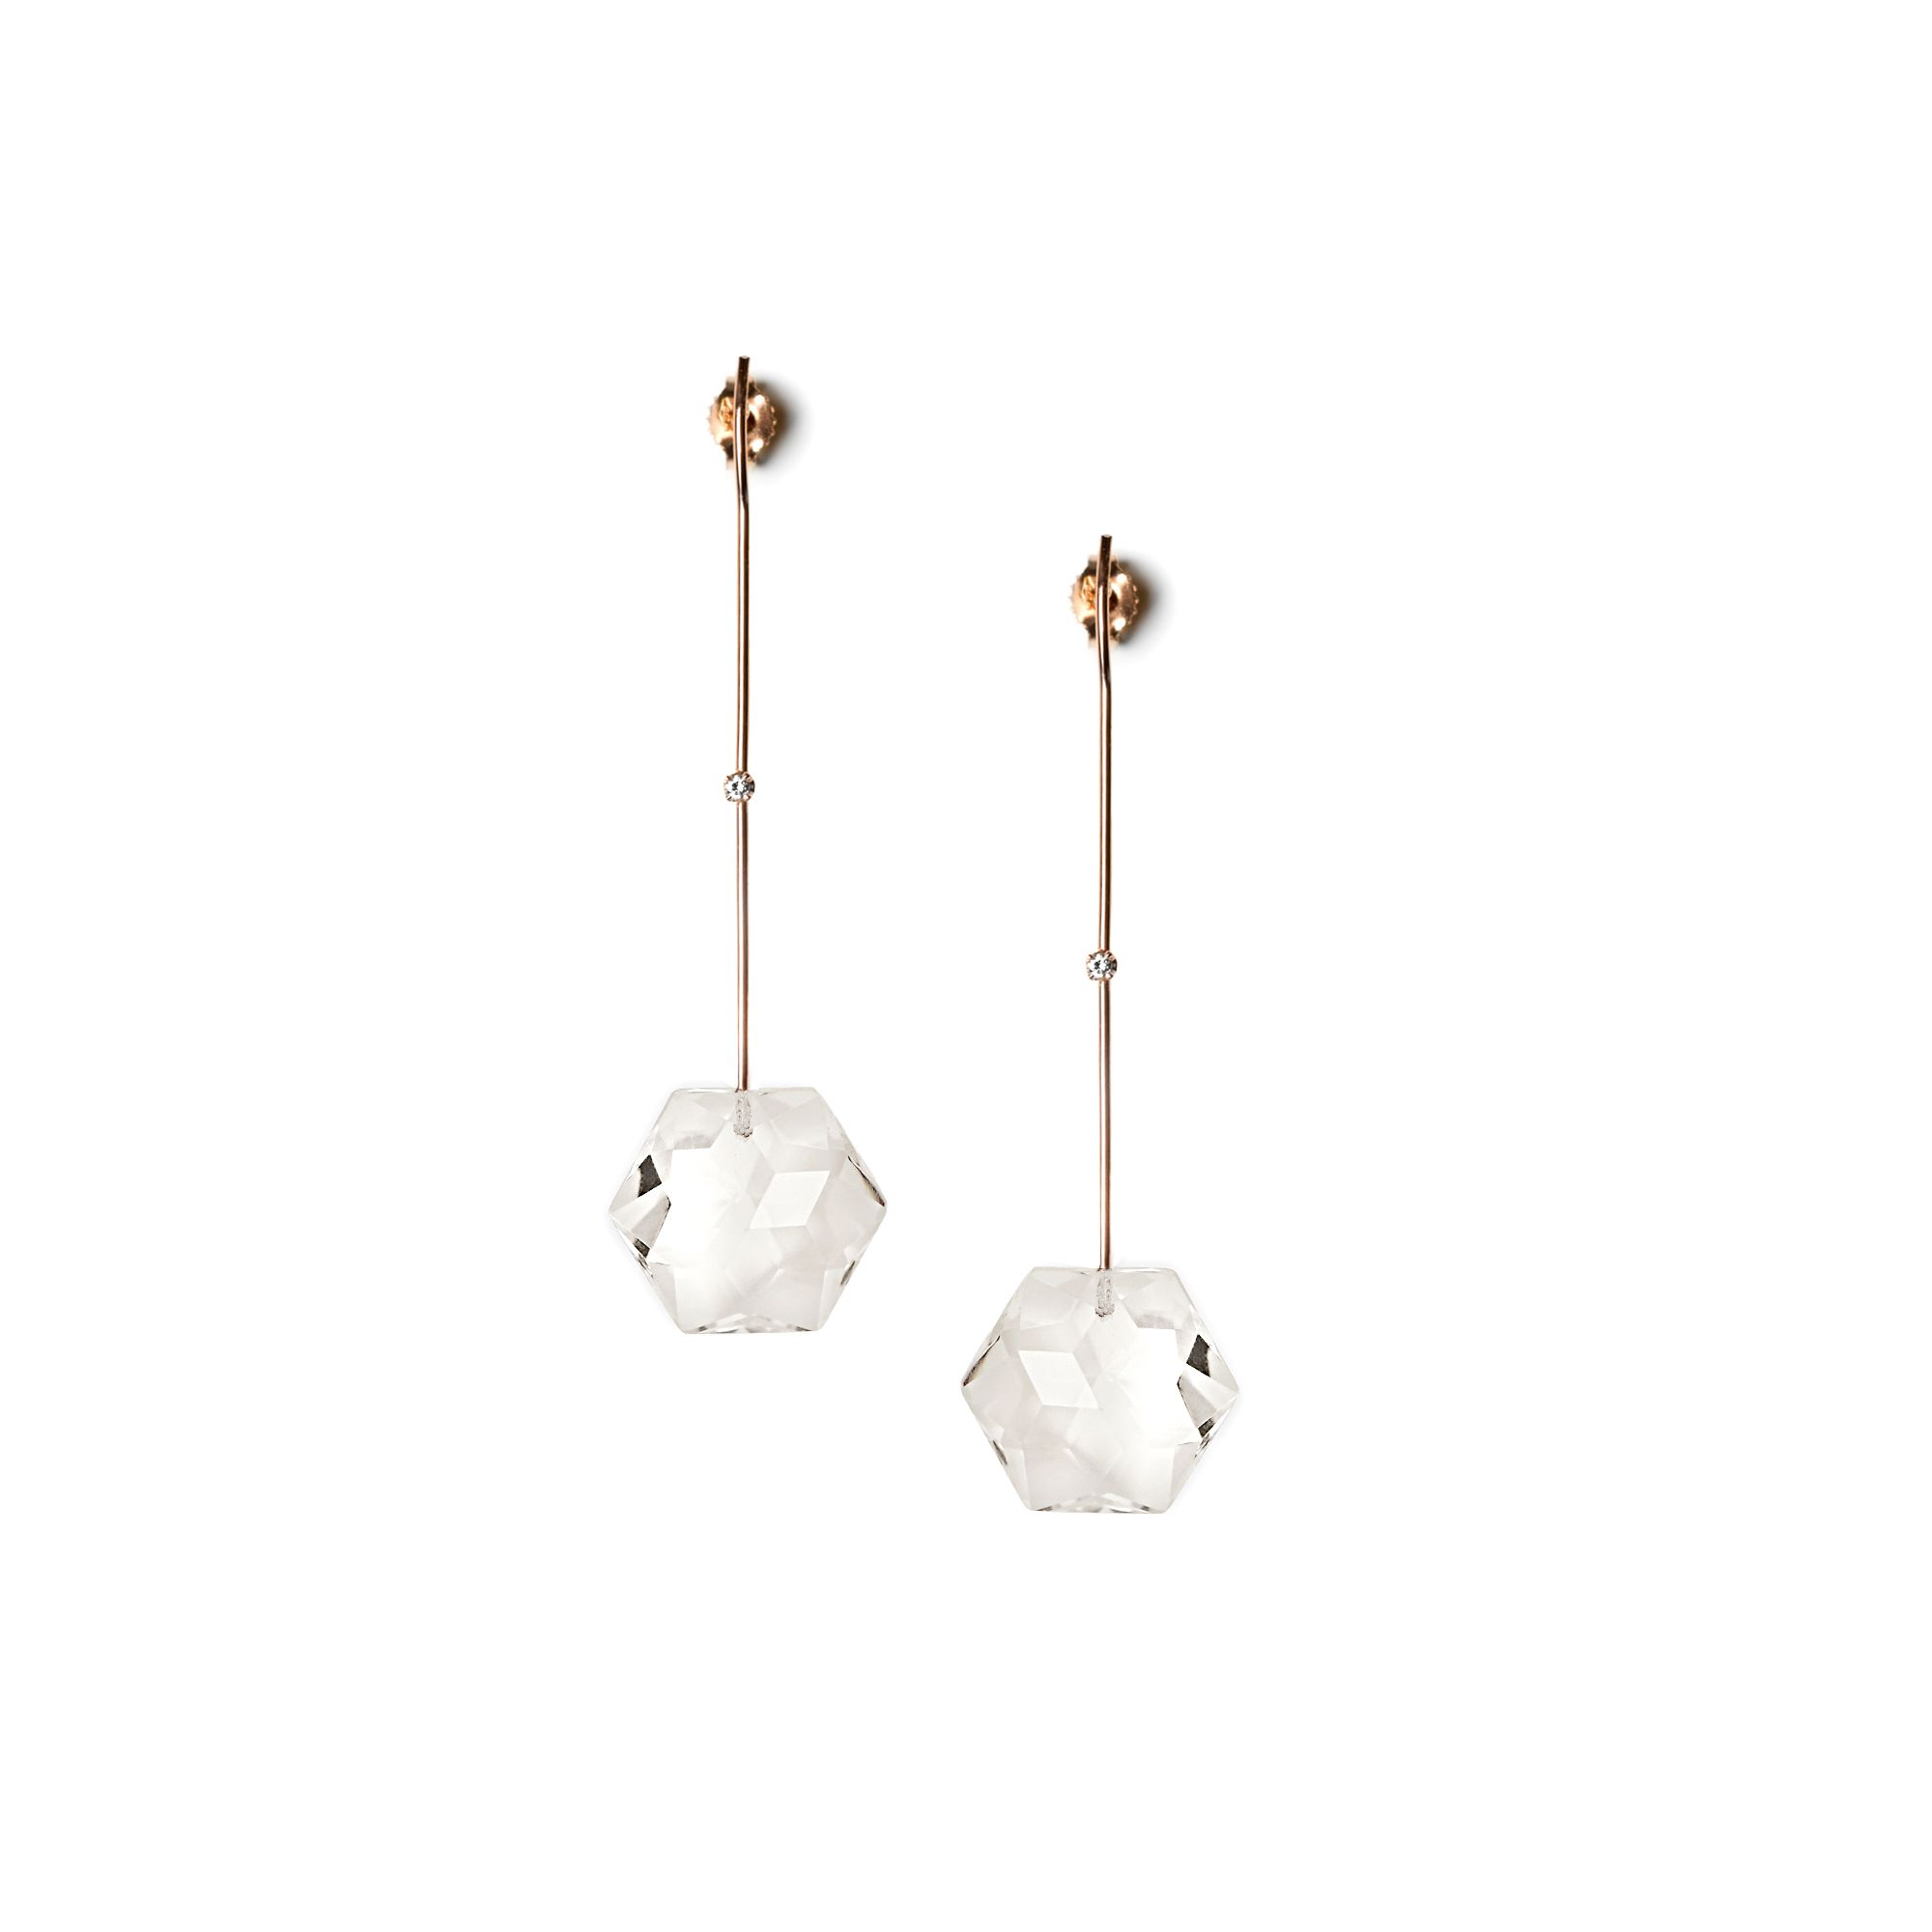 Rose gold 'Amo' with crystals Earrings in rose gold, white diamonds and rock crystal